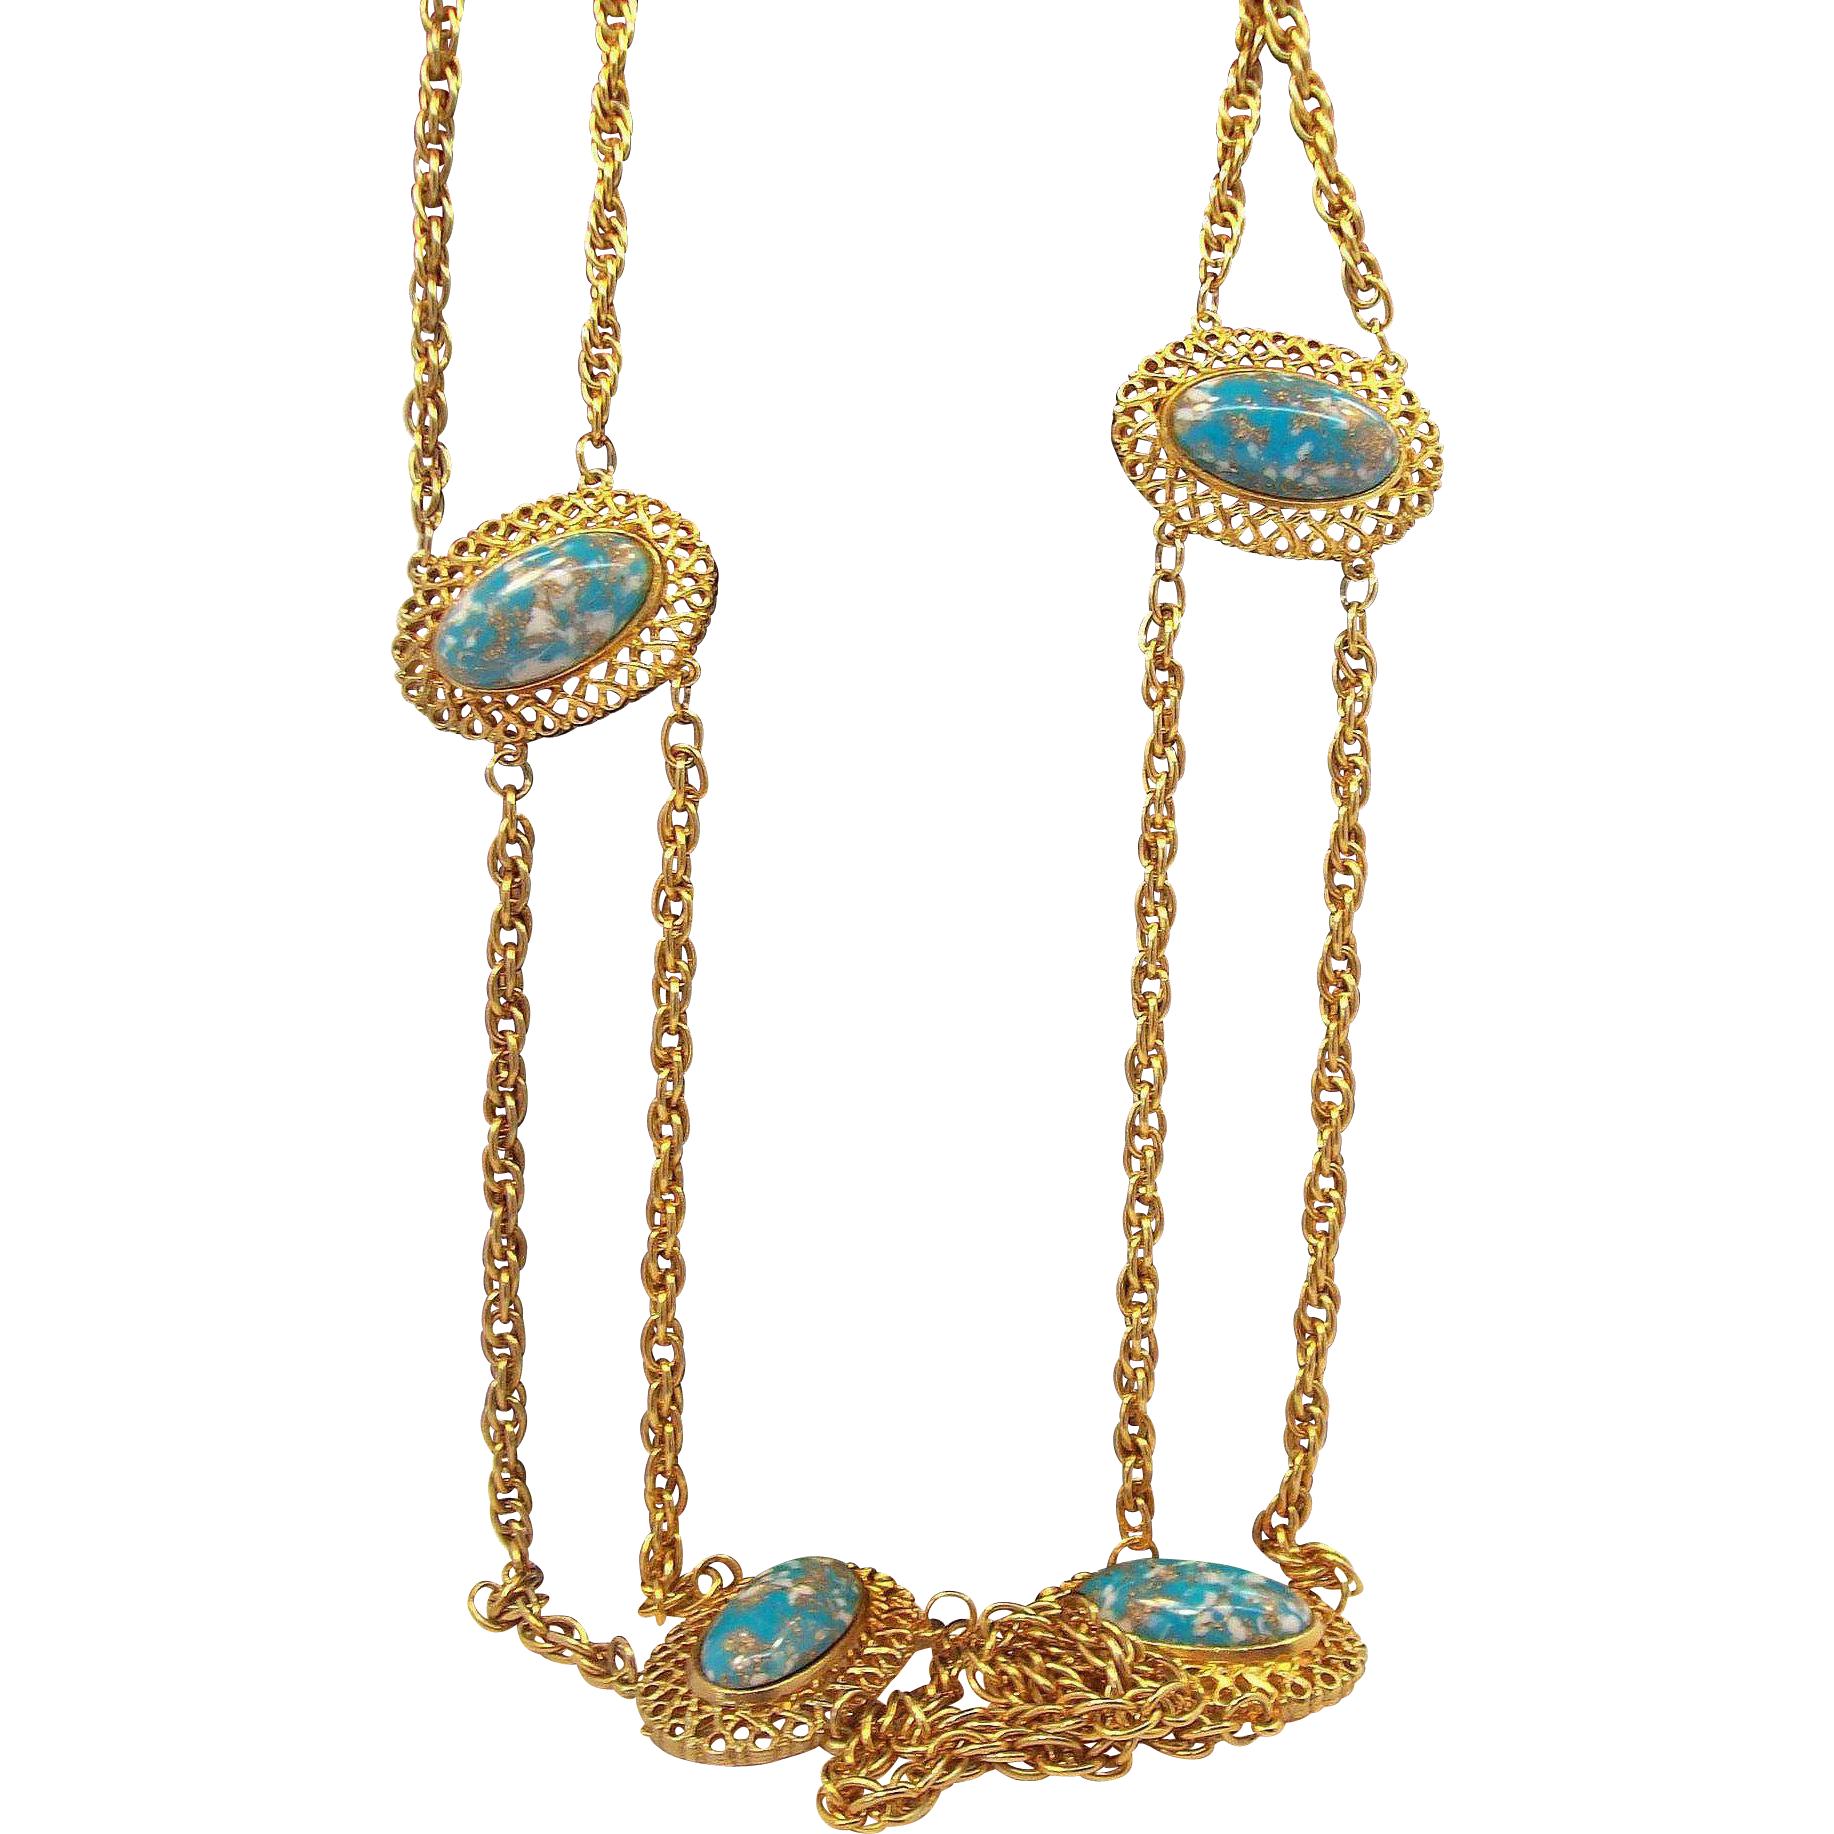 Huge Chunky Retro Goldtone Metal Belt  Blue Confetti Thermoset Plastic Cabochons